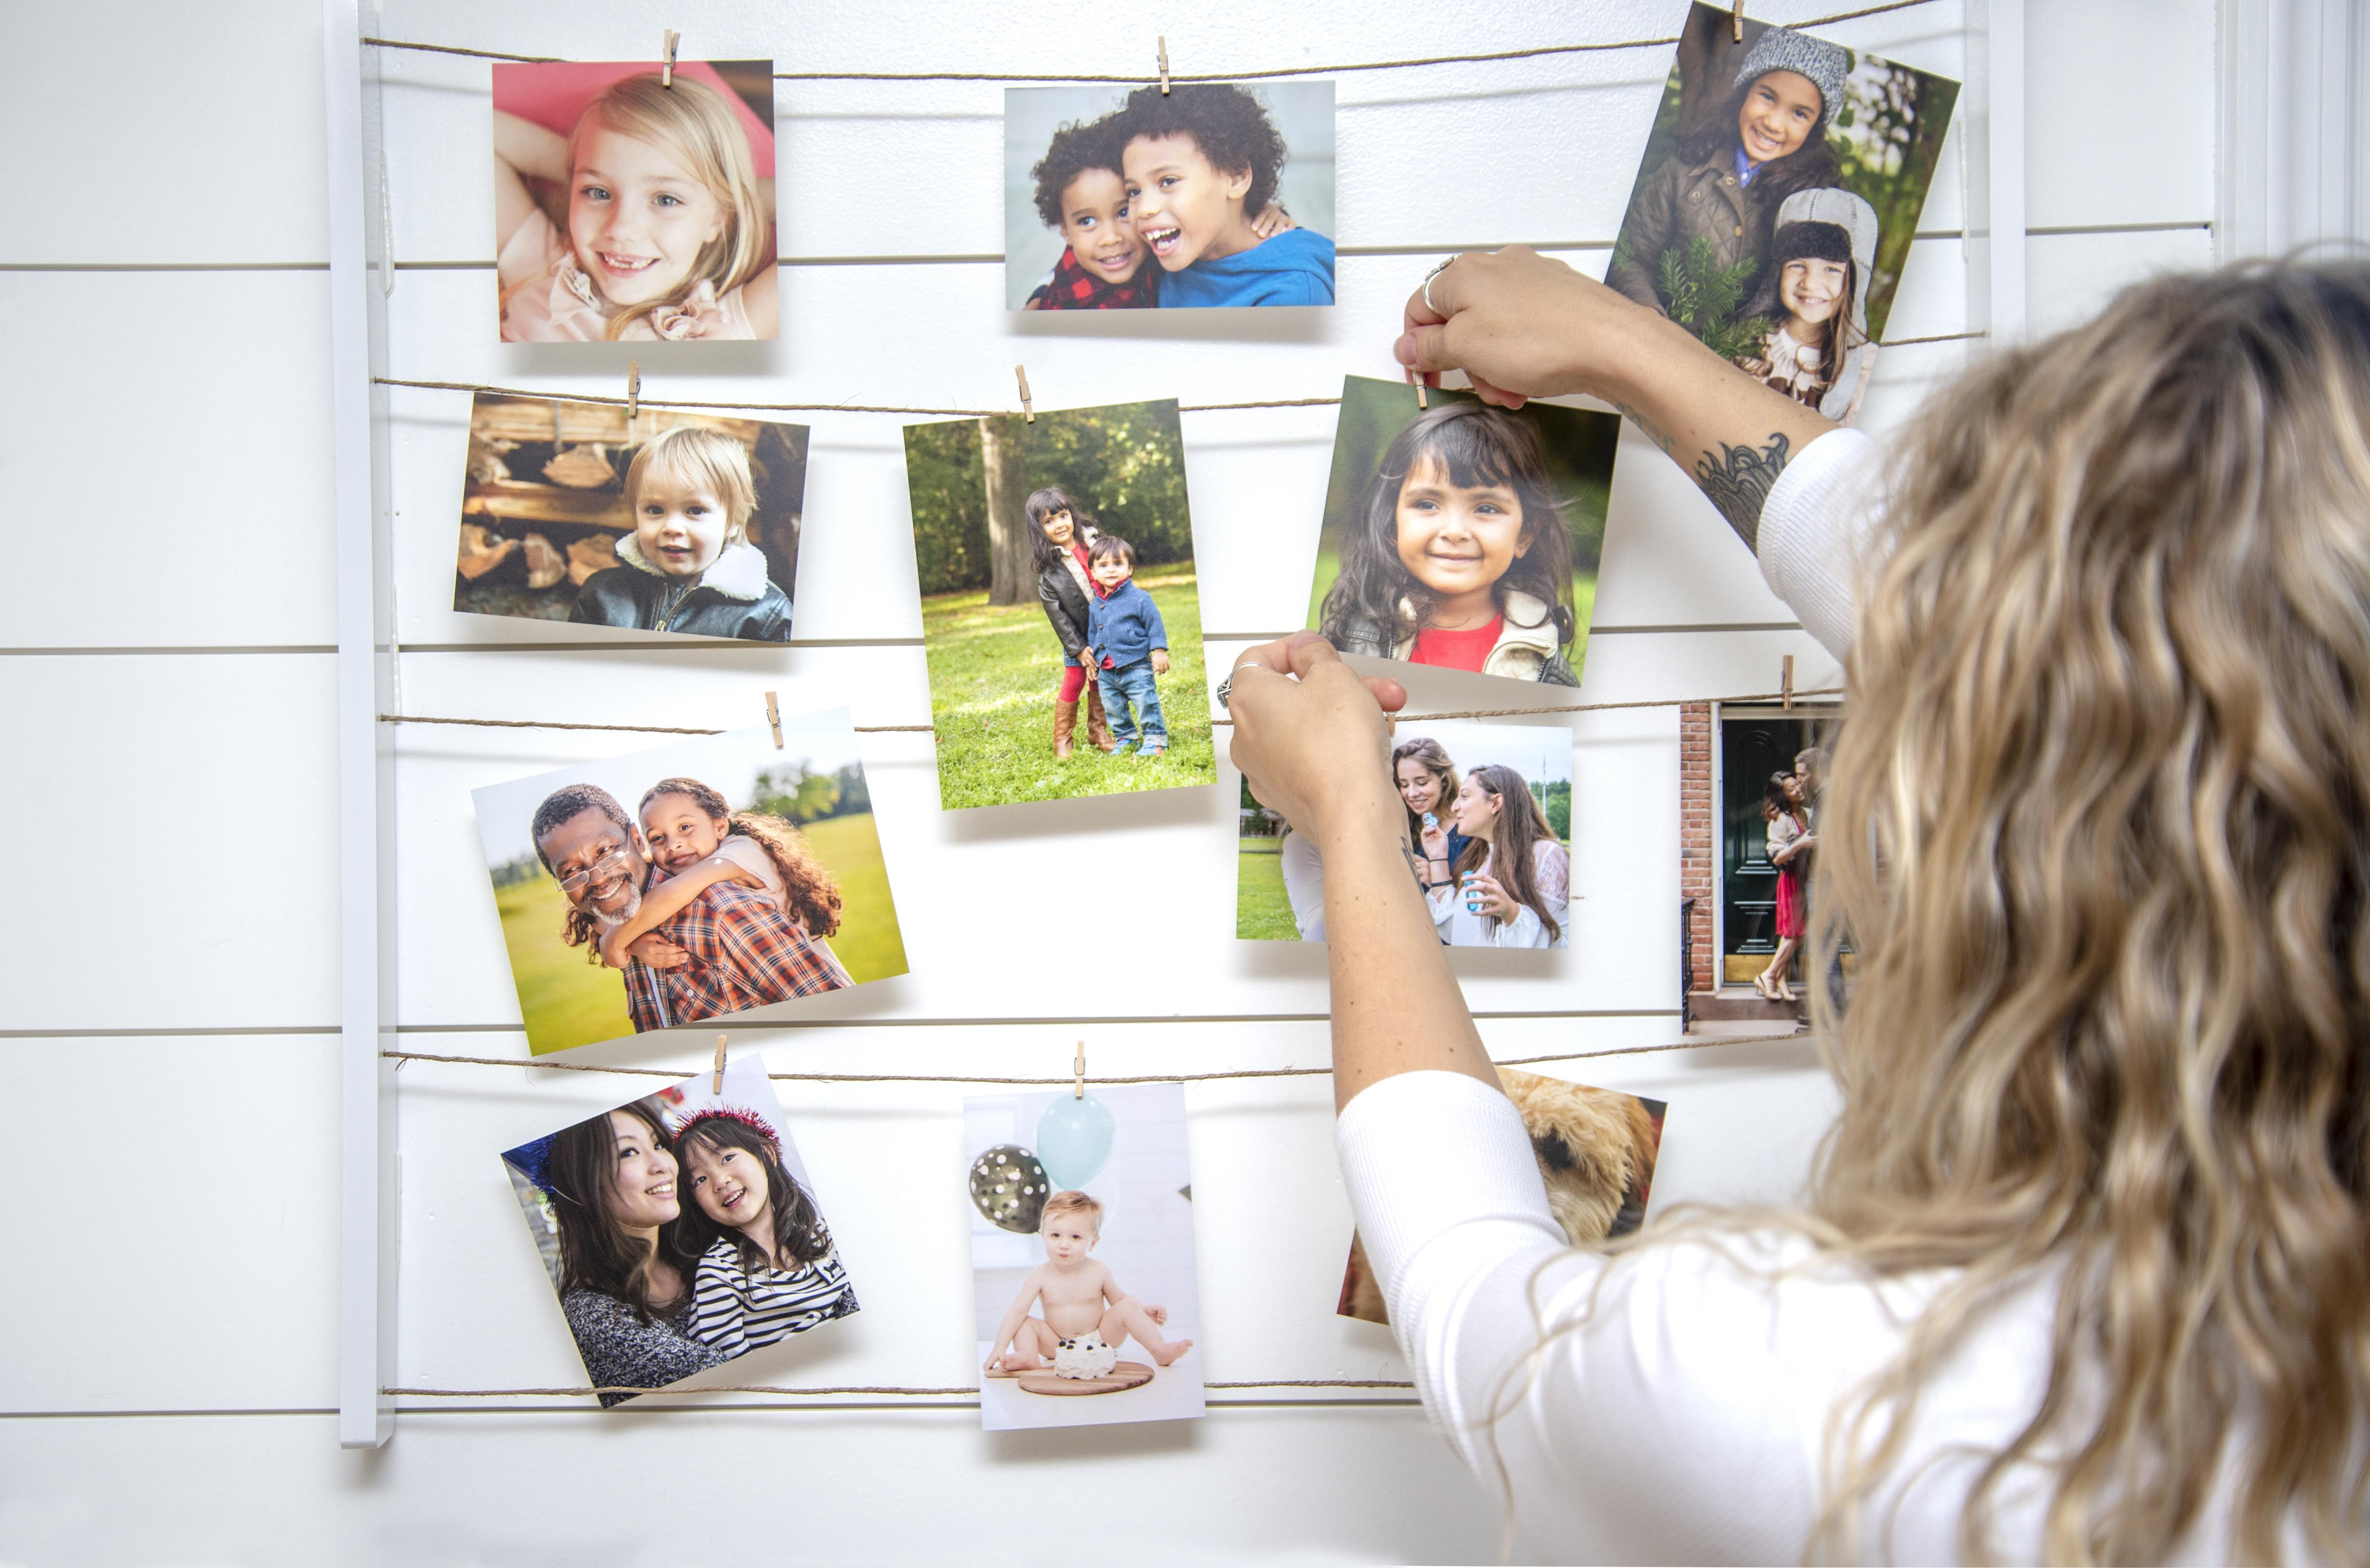 Adult female pinning a photo of a young girl along a string holding many other photos against a white wall.